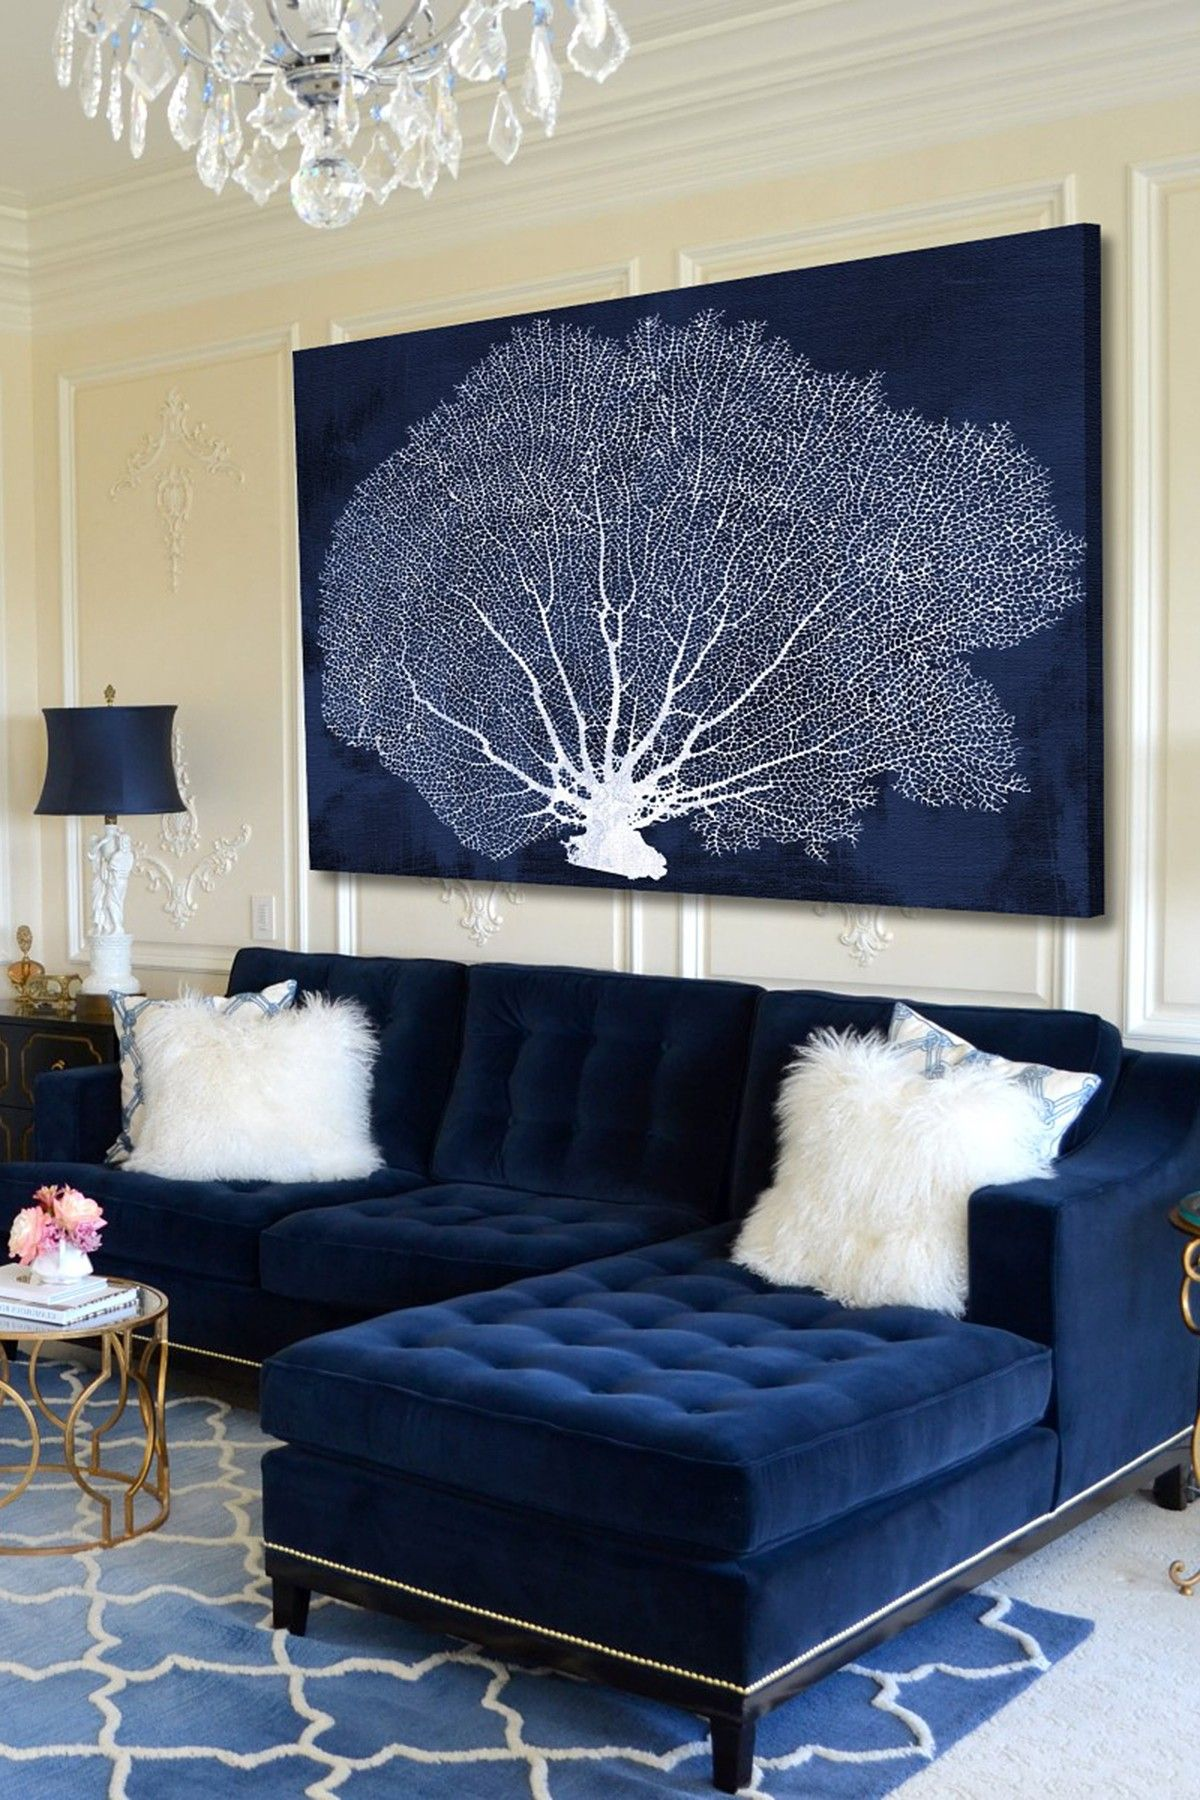 7 Best Royal Blue Couch Living Room Ideas Blue Couches Blue Velvet Sofa Blue Couch Living Room